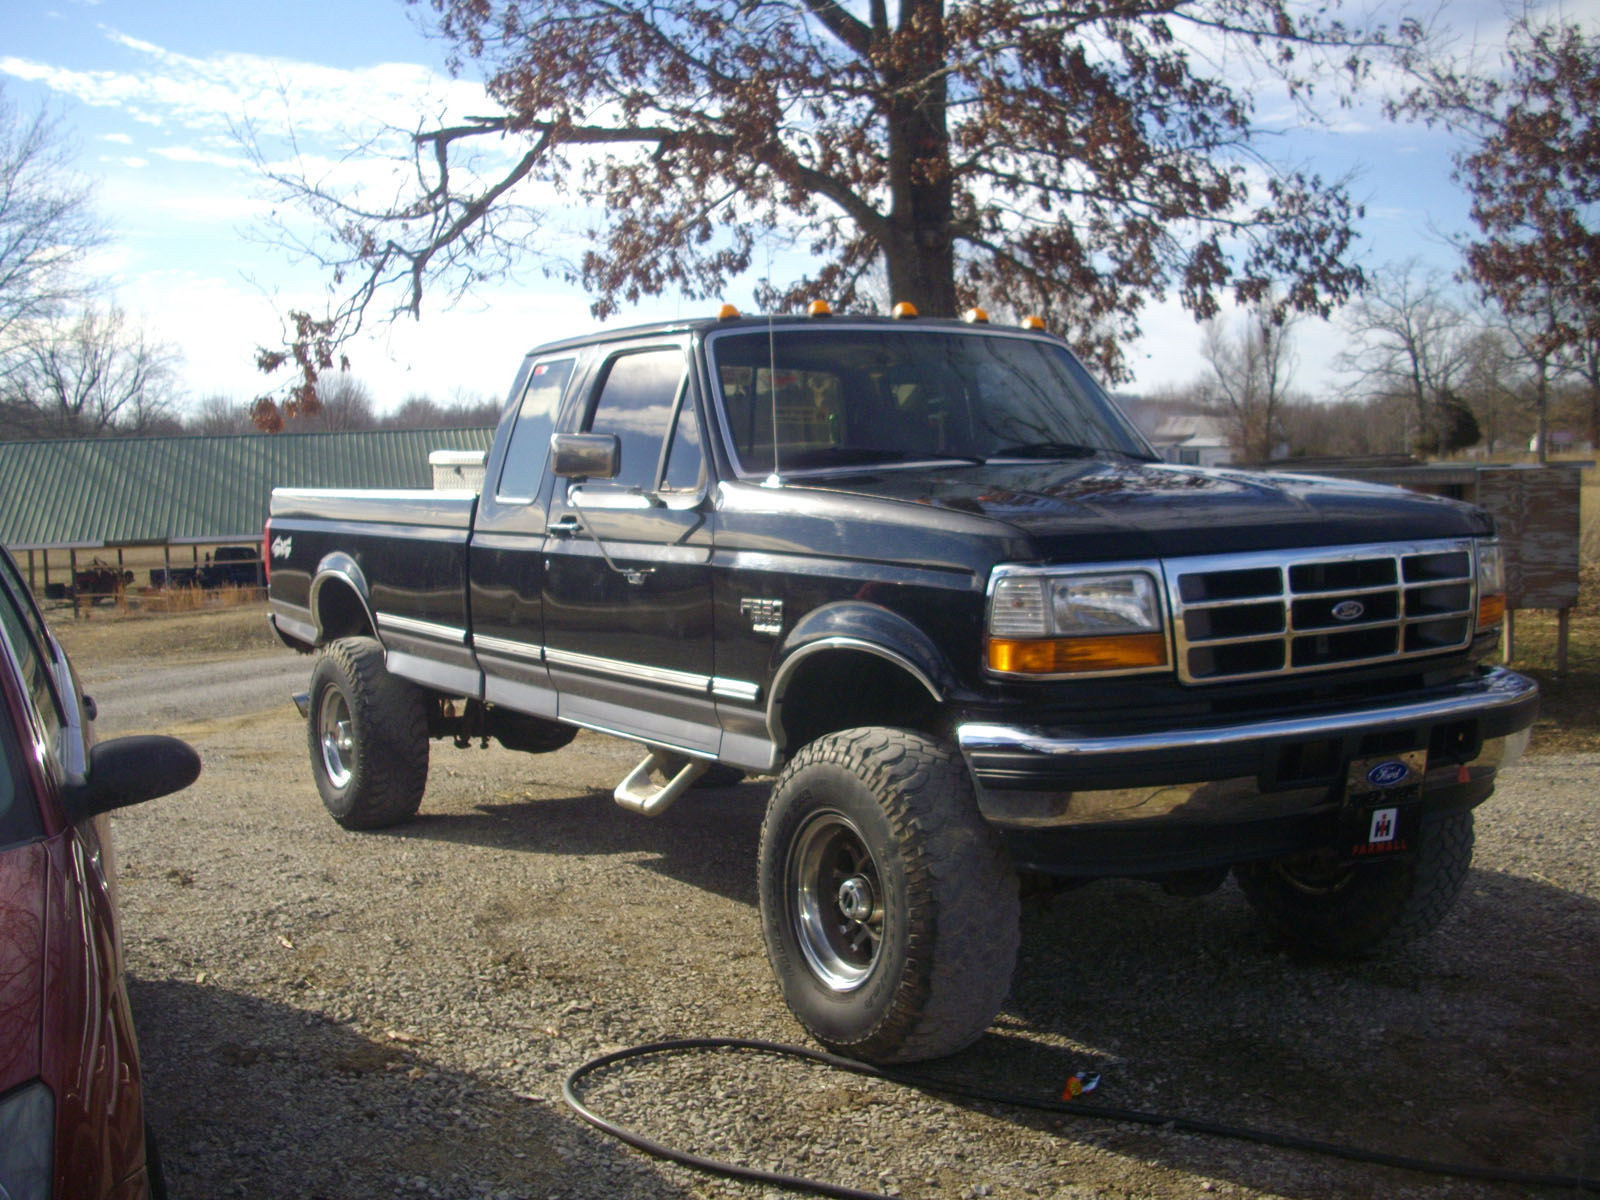 Ford powerstroke wallpaper images pictures becuo